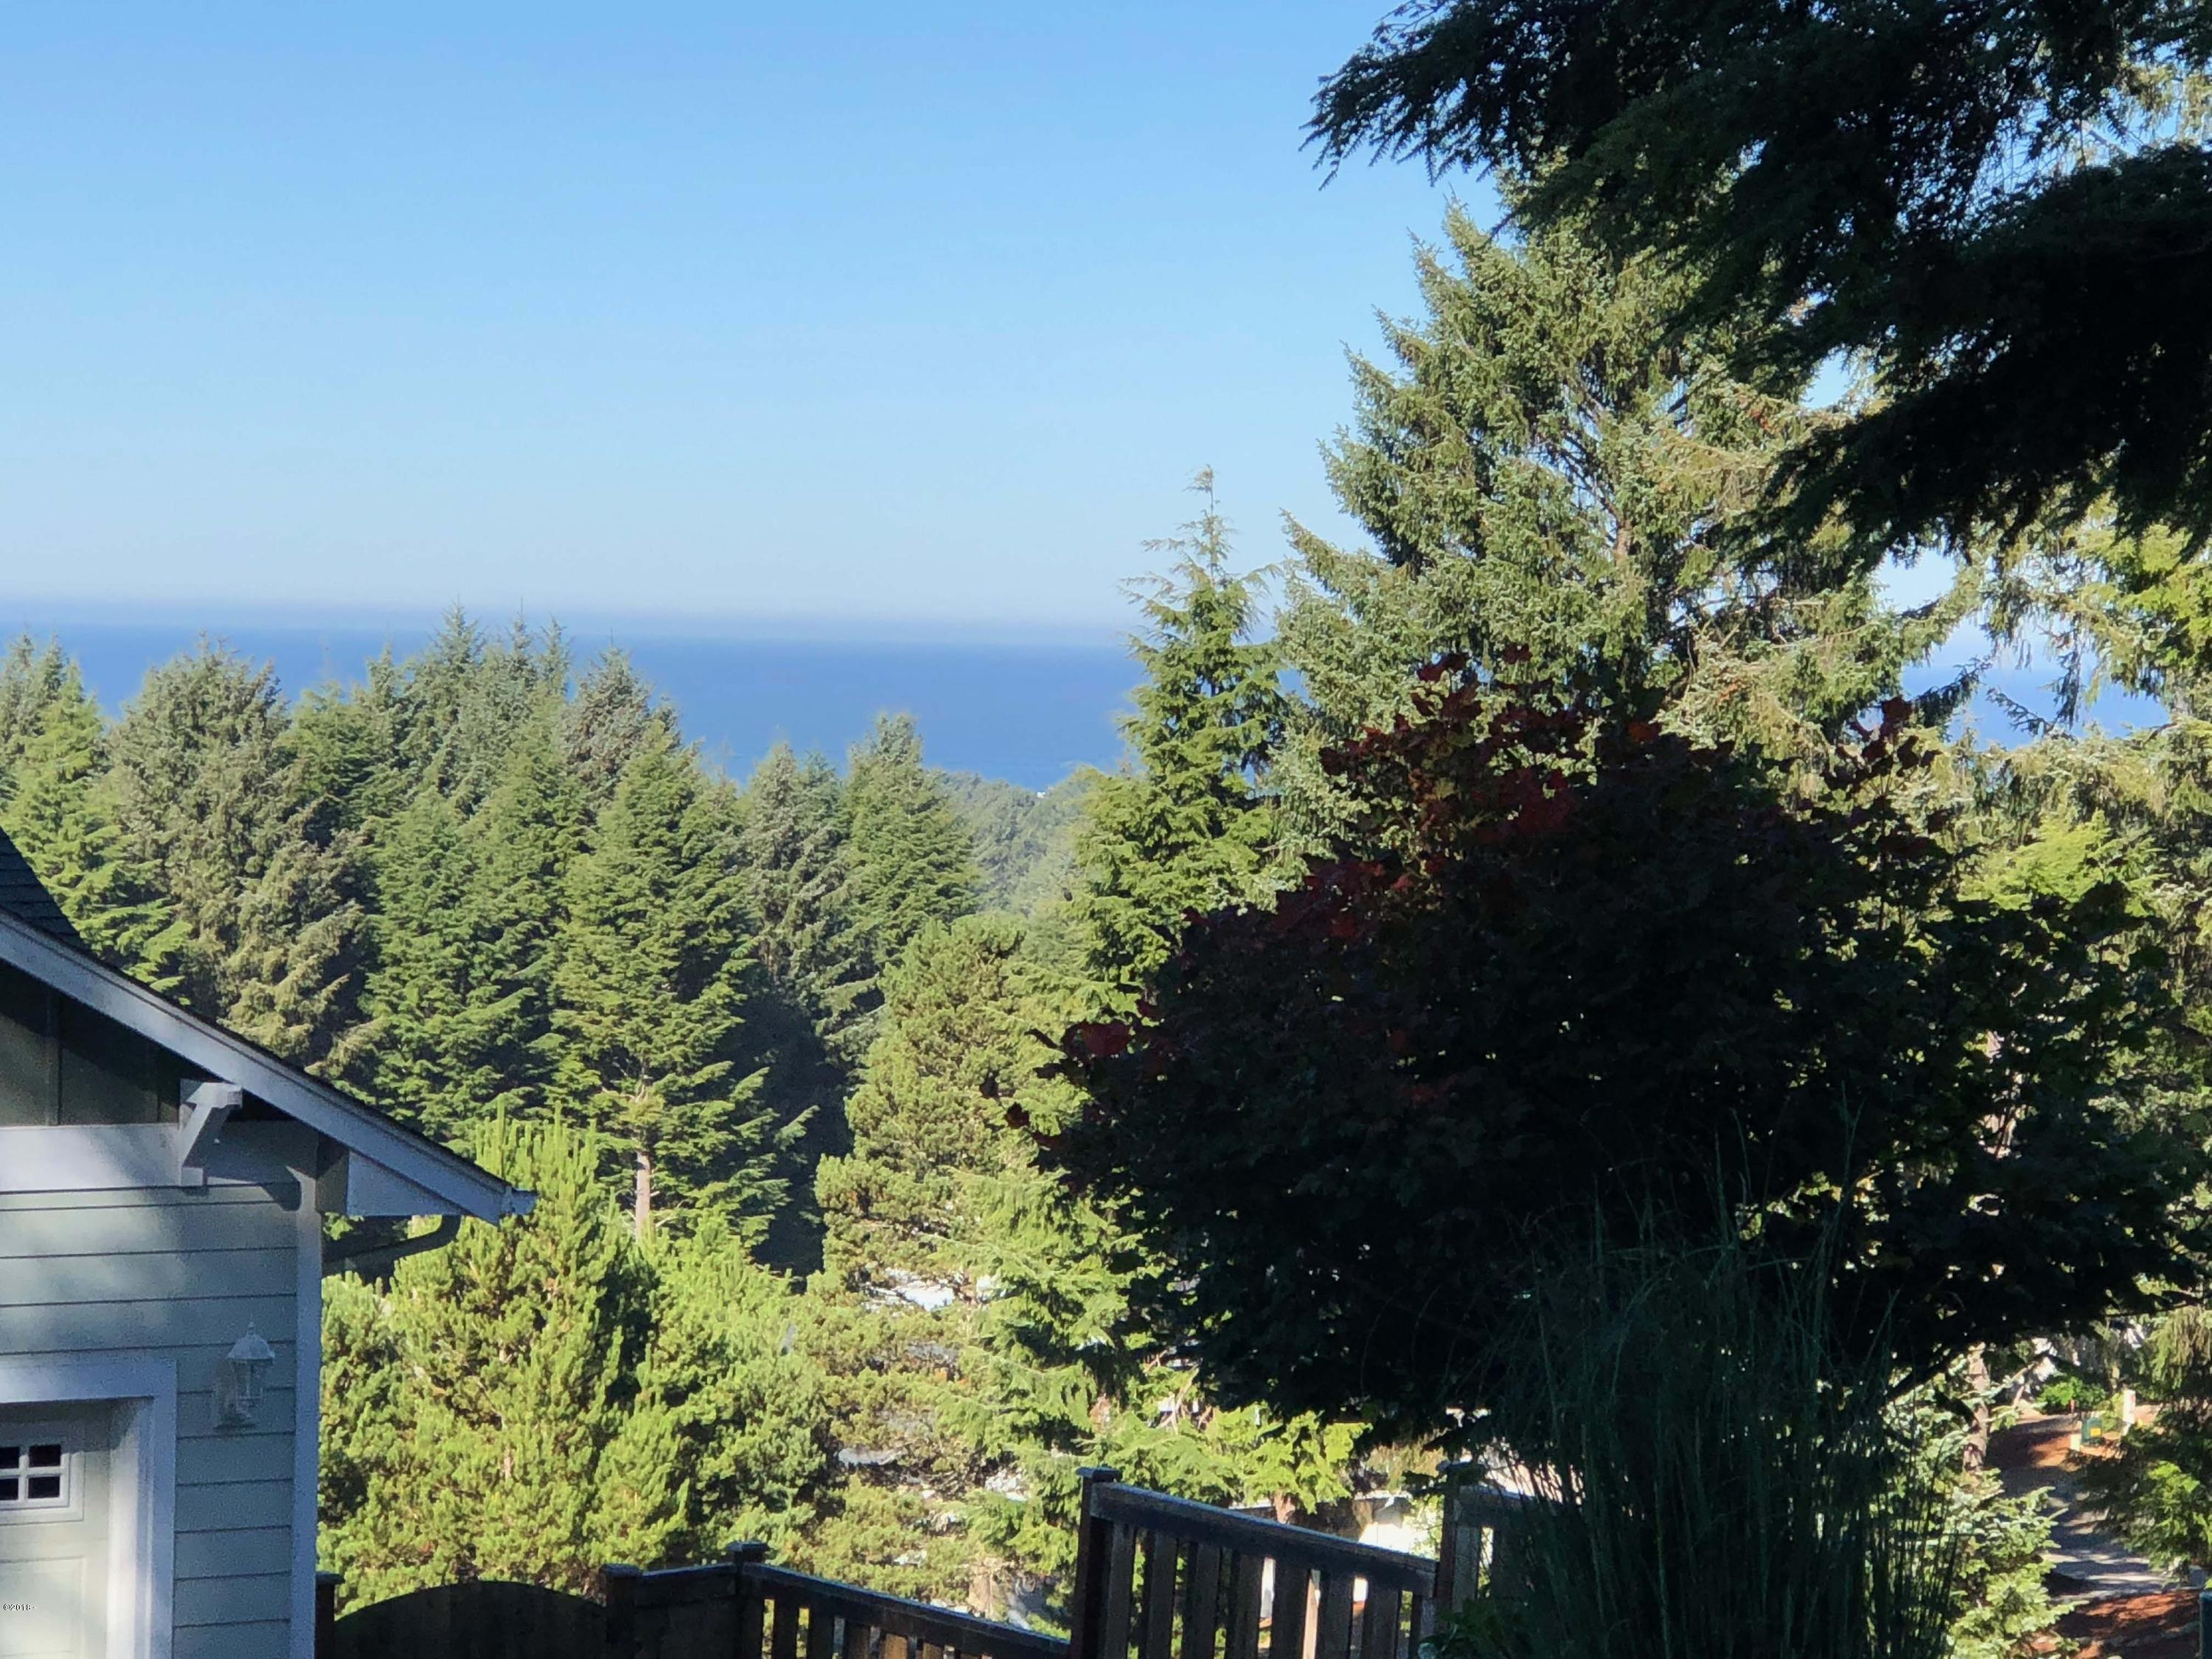 L3300/4100 SE 20th St, Lincoln City, OR 97367 - Ocean view